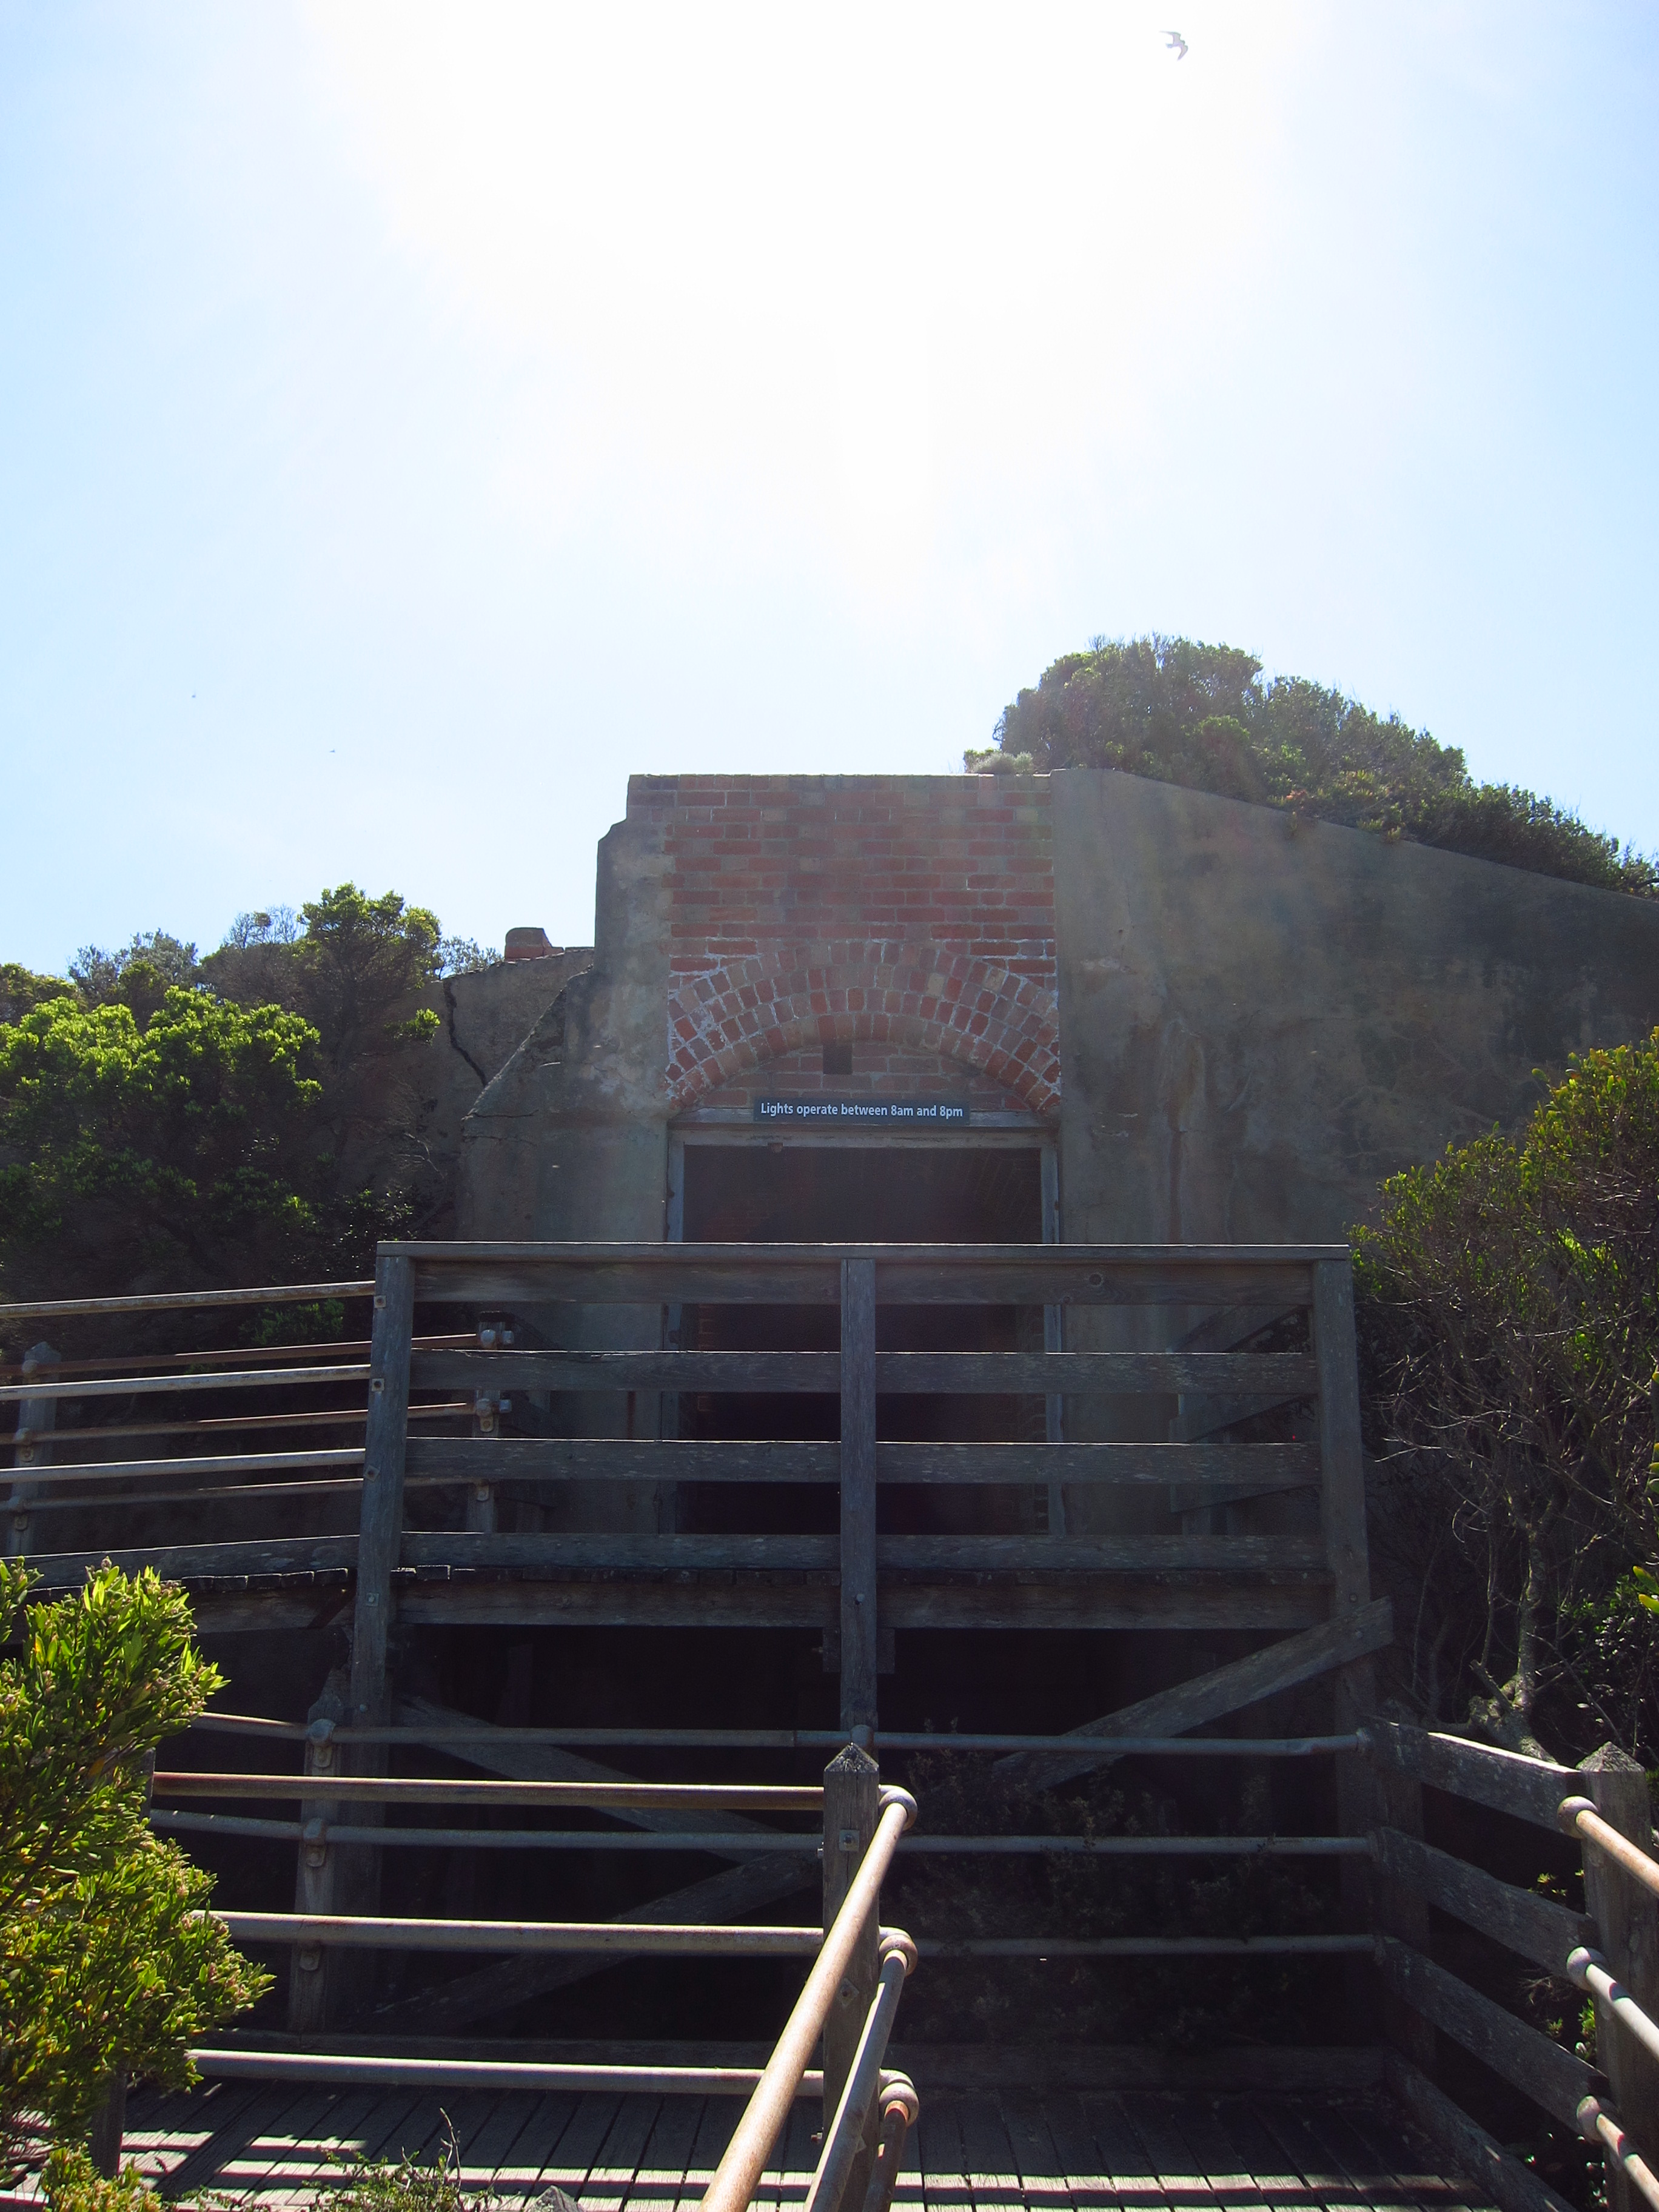 53. Entrance of the tunnel